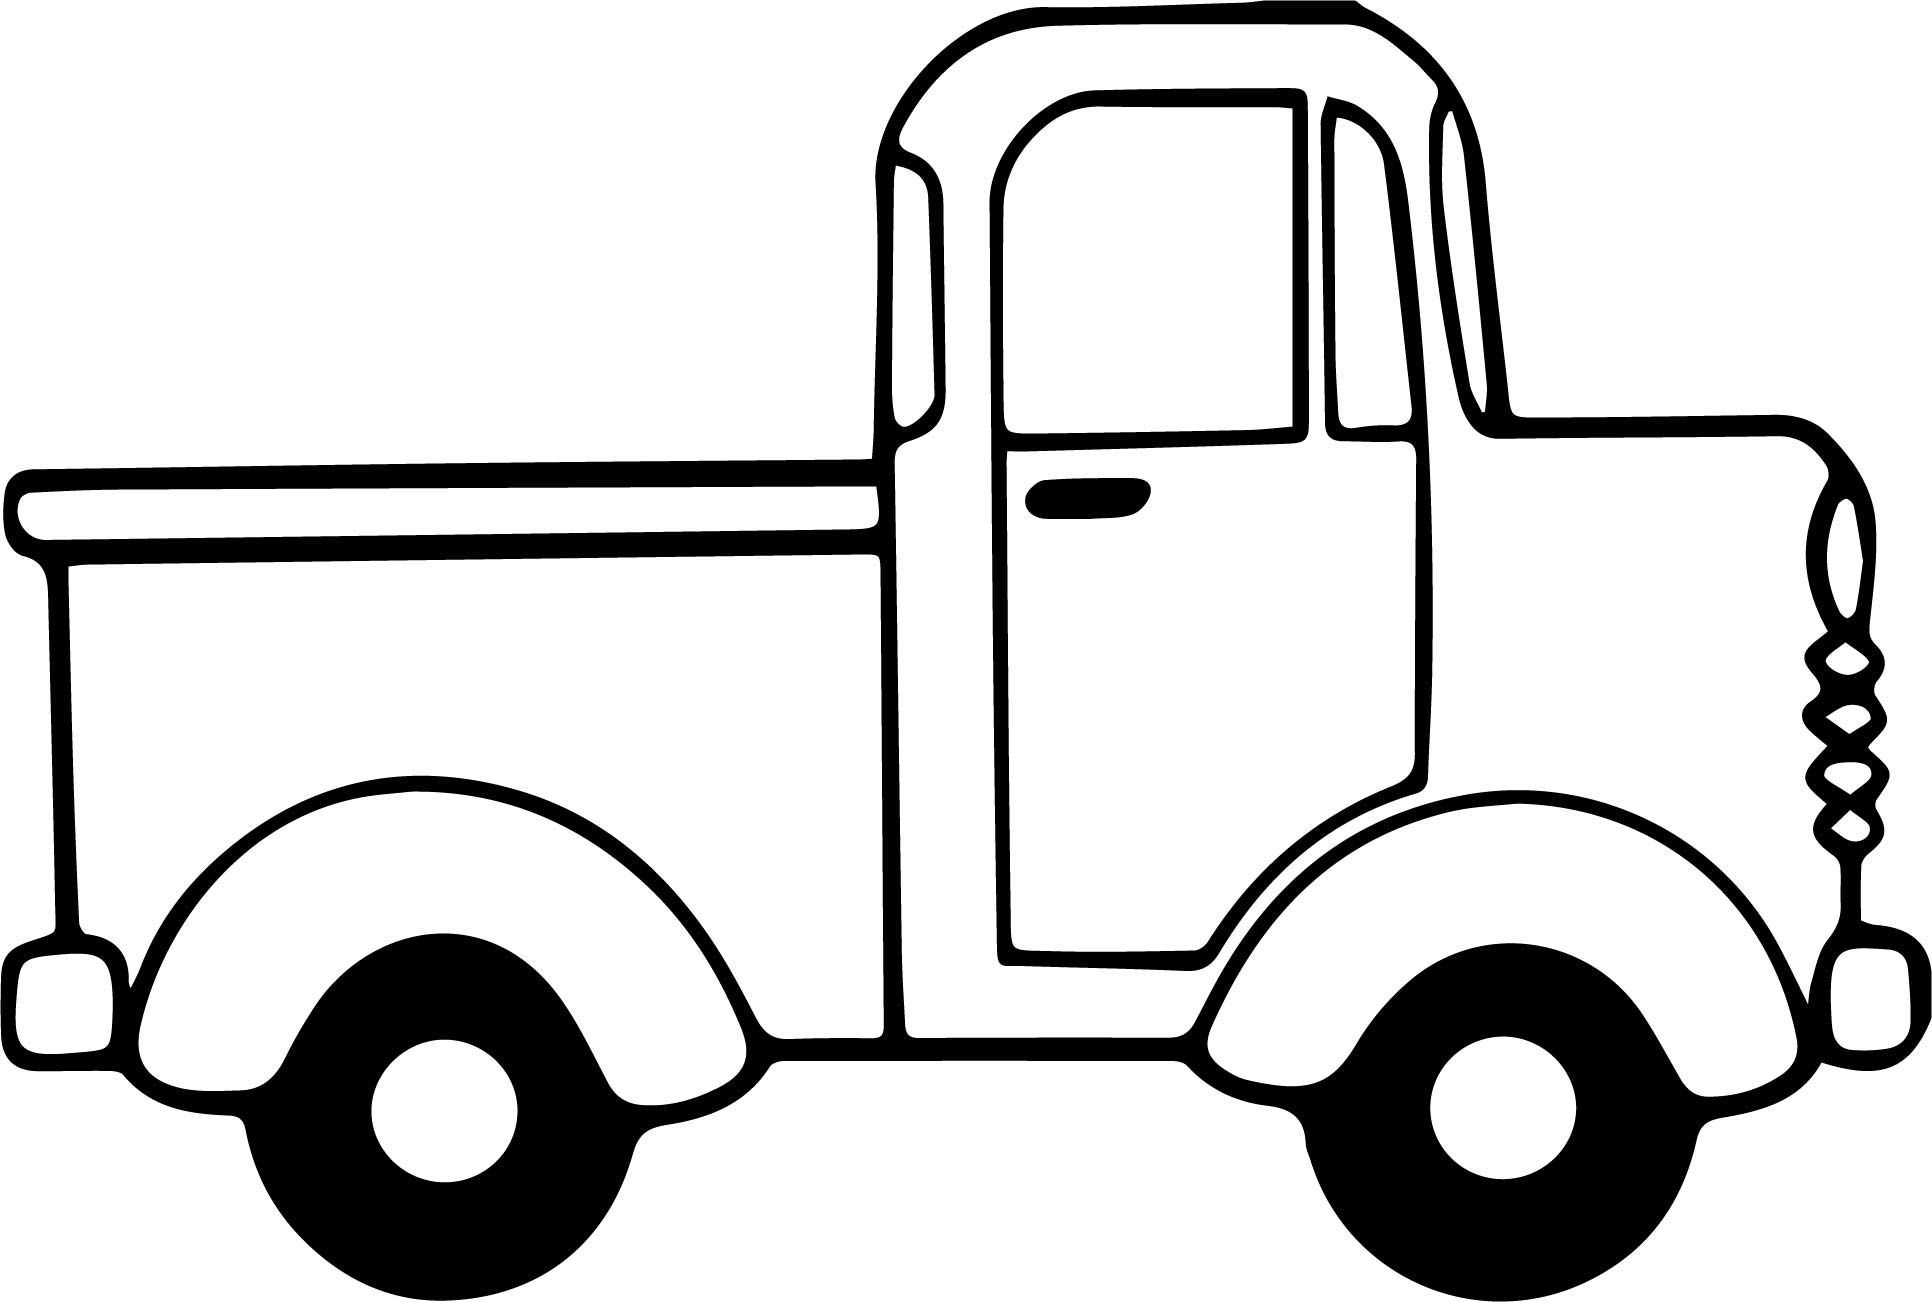 minicab truck side view coloring page. Black Bedroom Furniture Sets. Home Design Ideas